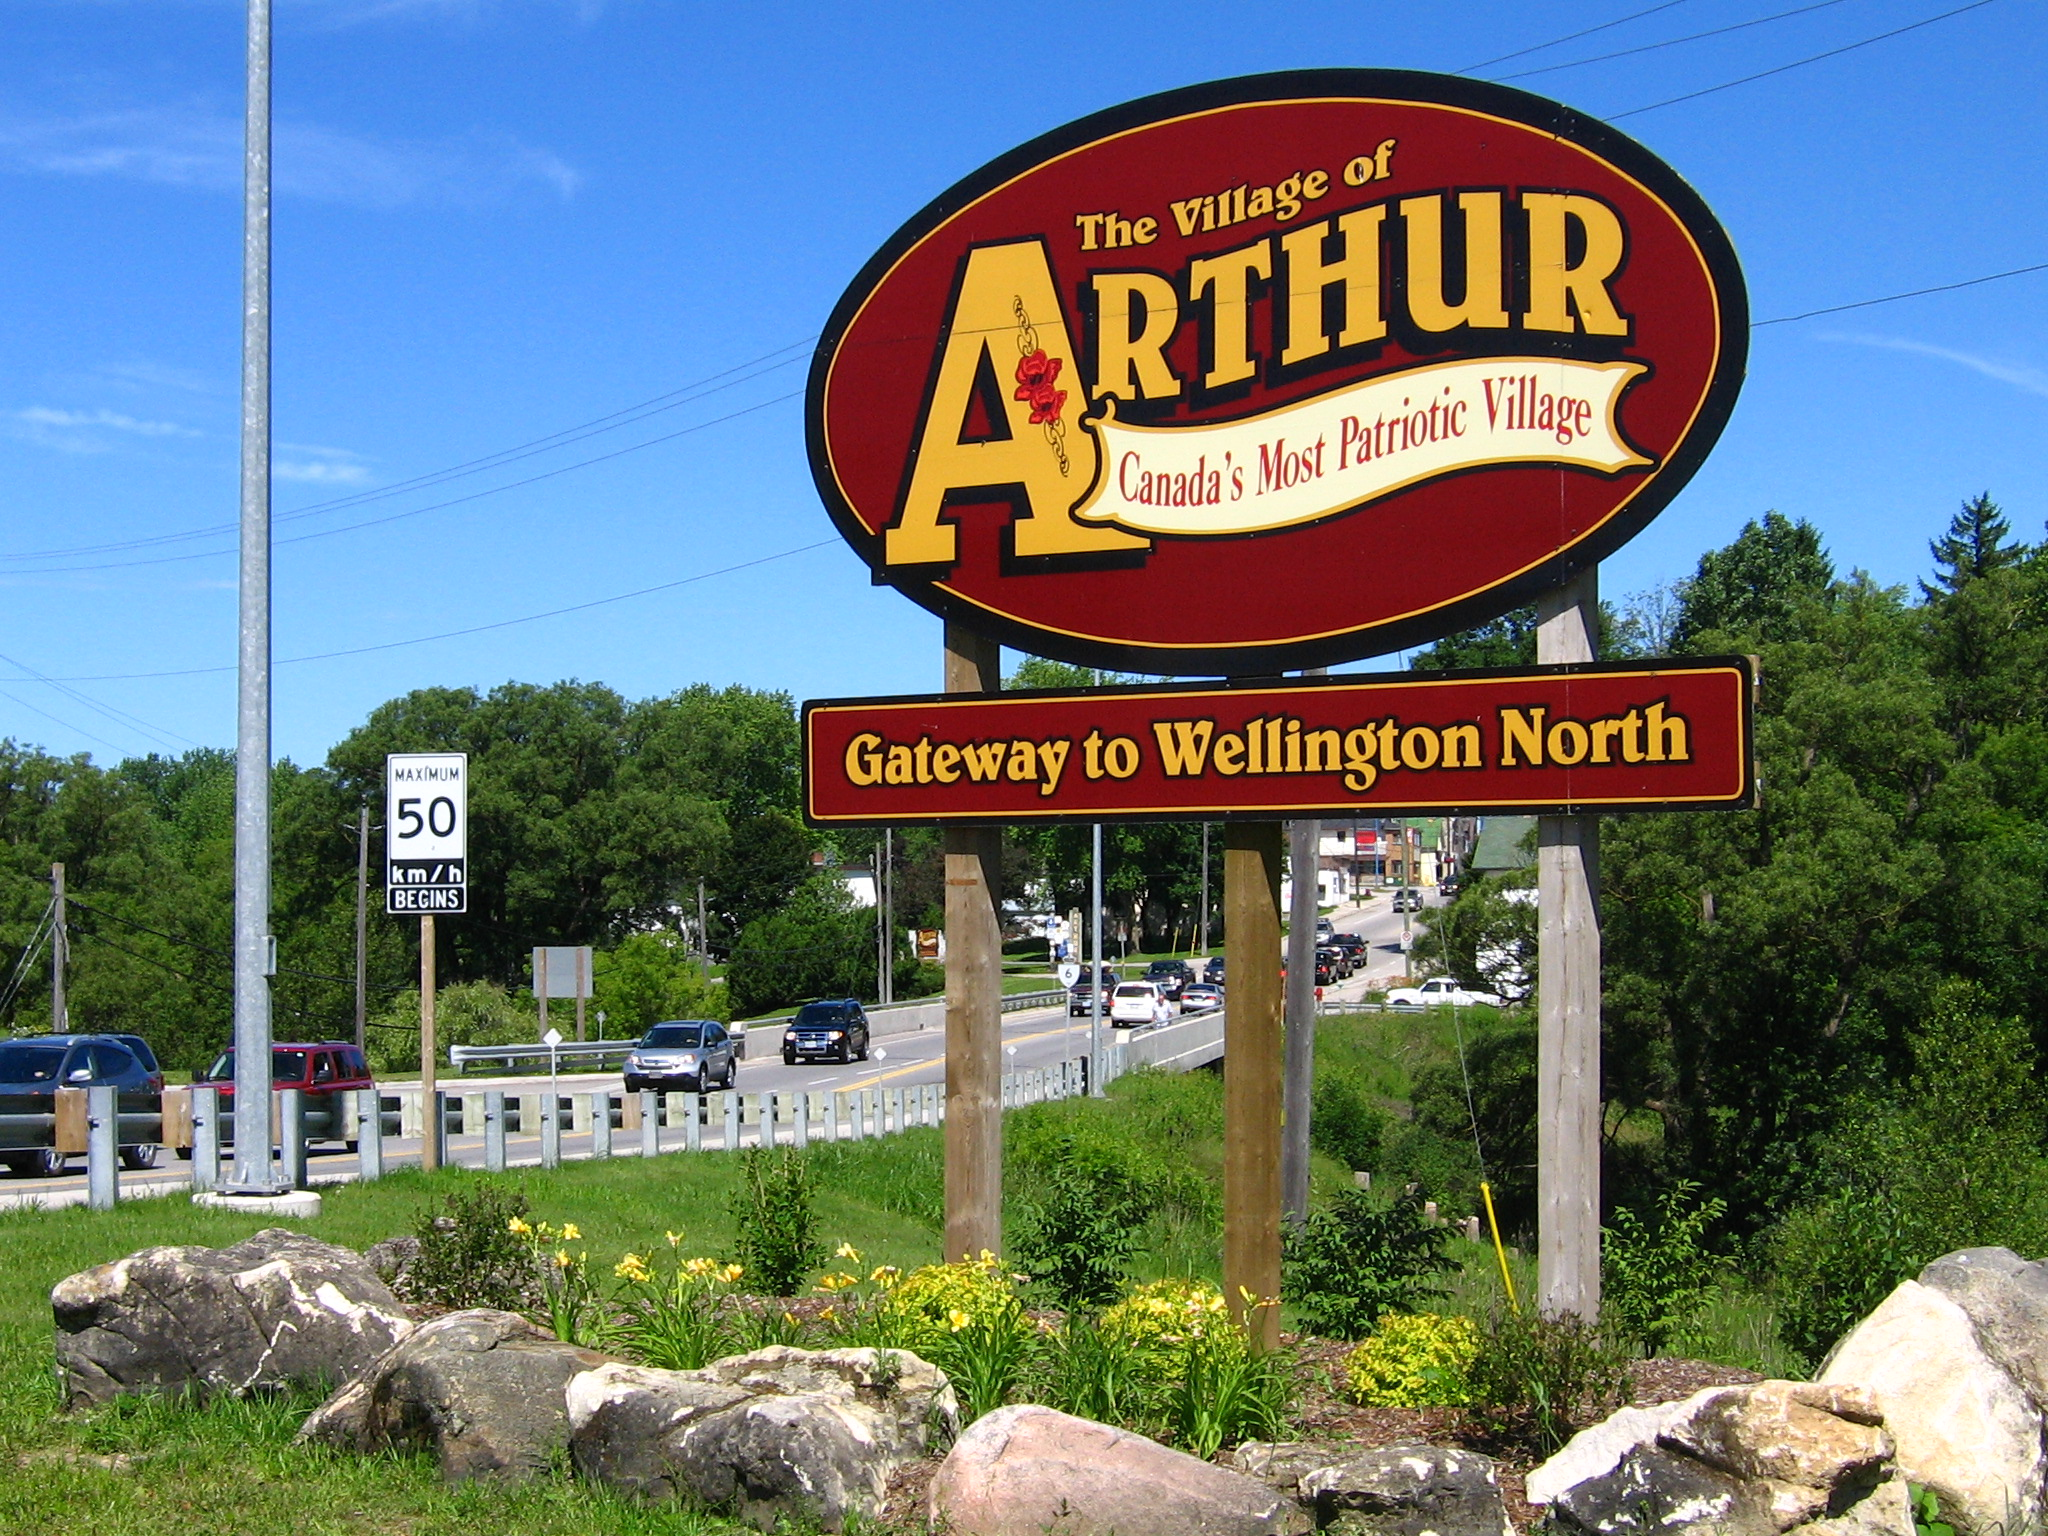 The Village of Arthur Sign at the Intersection of Hwy 6 and Wellington Road 109.